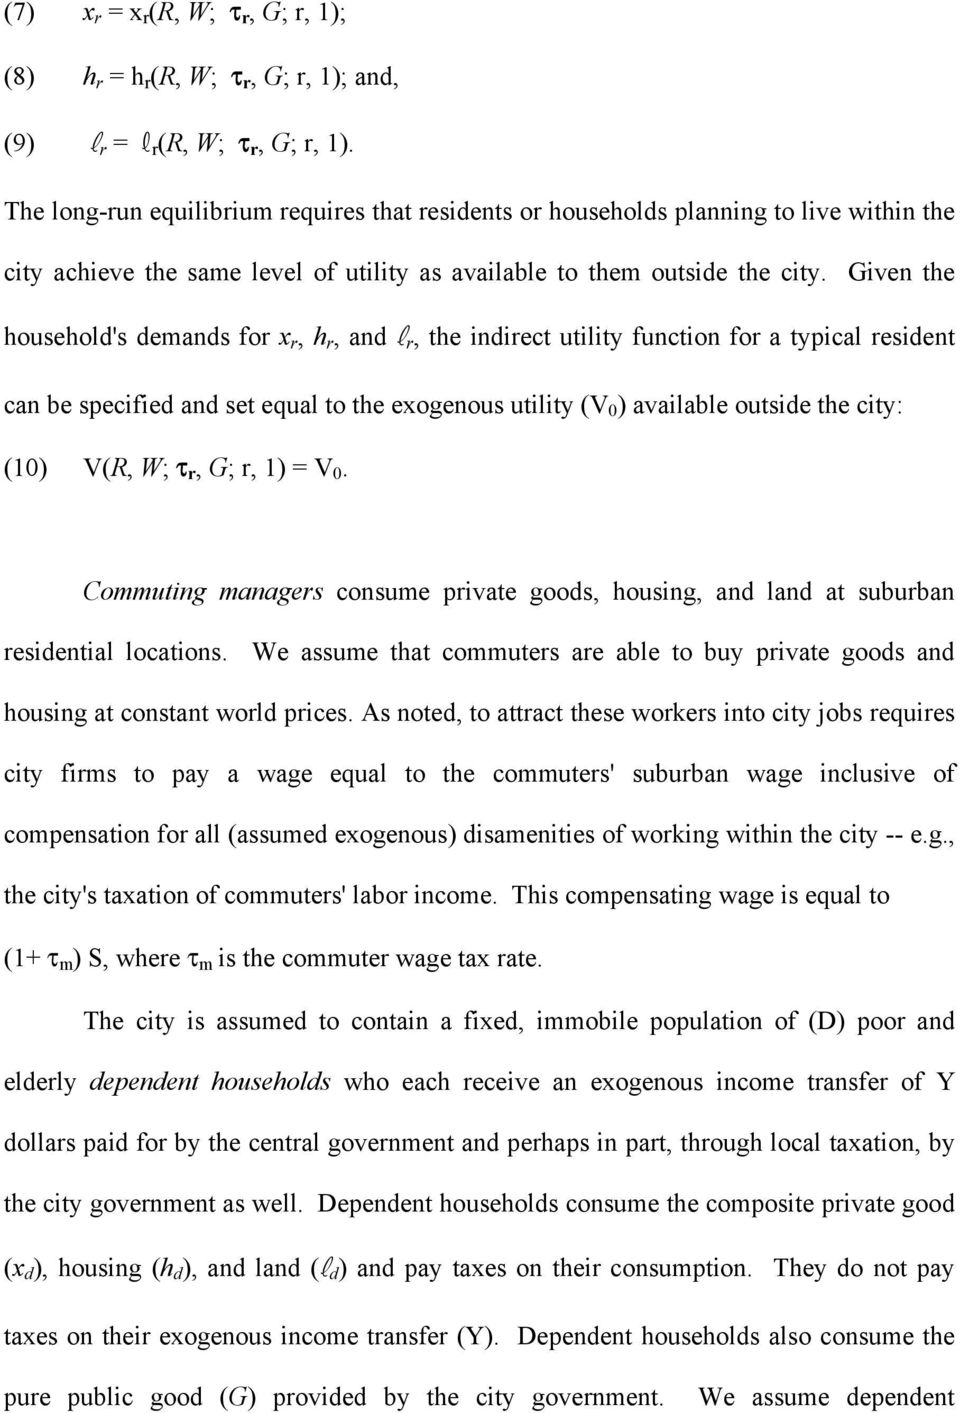 Given the household's demands for x r, h r, and r R, the indirect utility function for a typical resident can be specified and set equal to the exogenous utility (V 0 ) available outside the city: